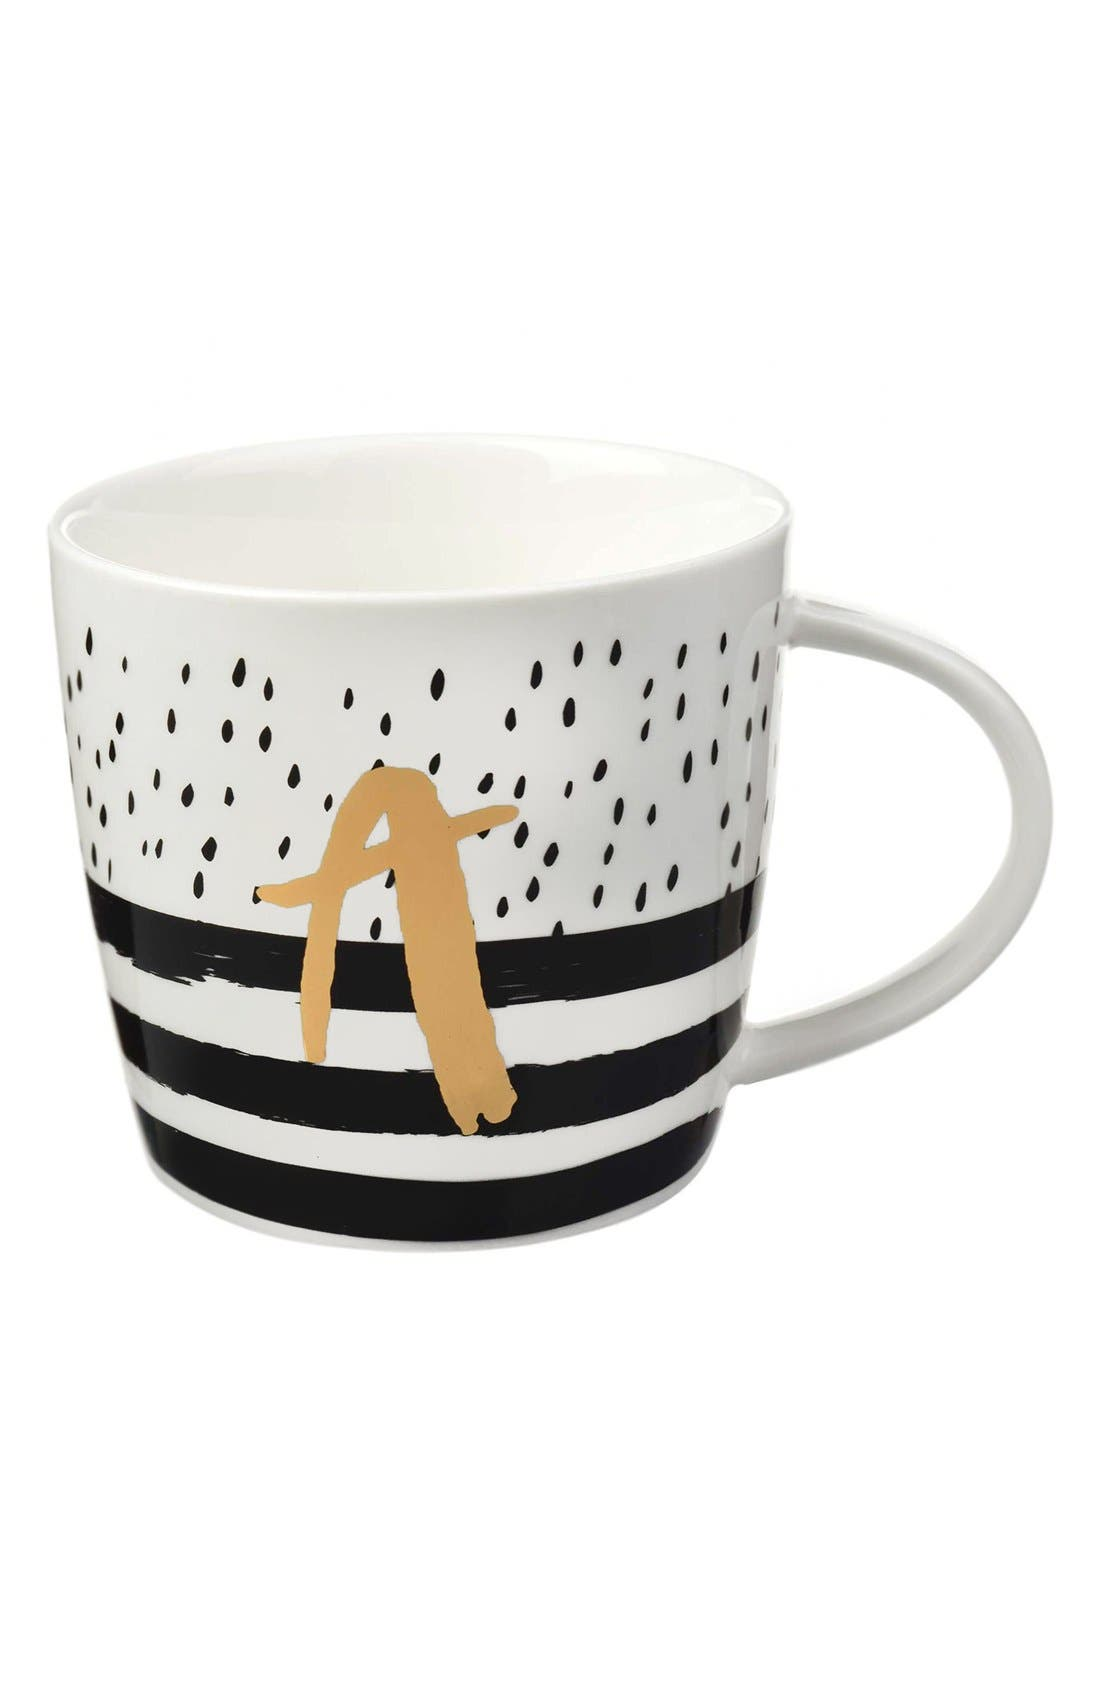 Monogram Mug,                             Main thumbnail 1, color,                             100